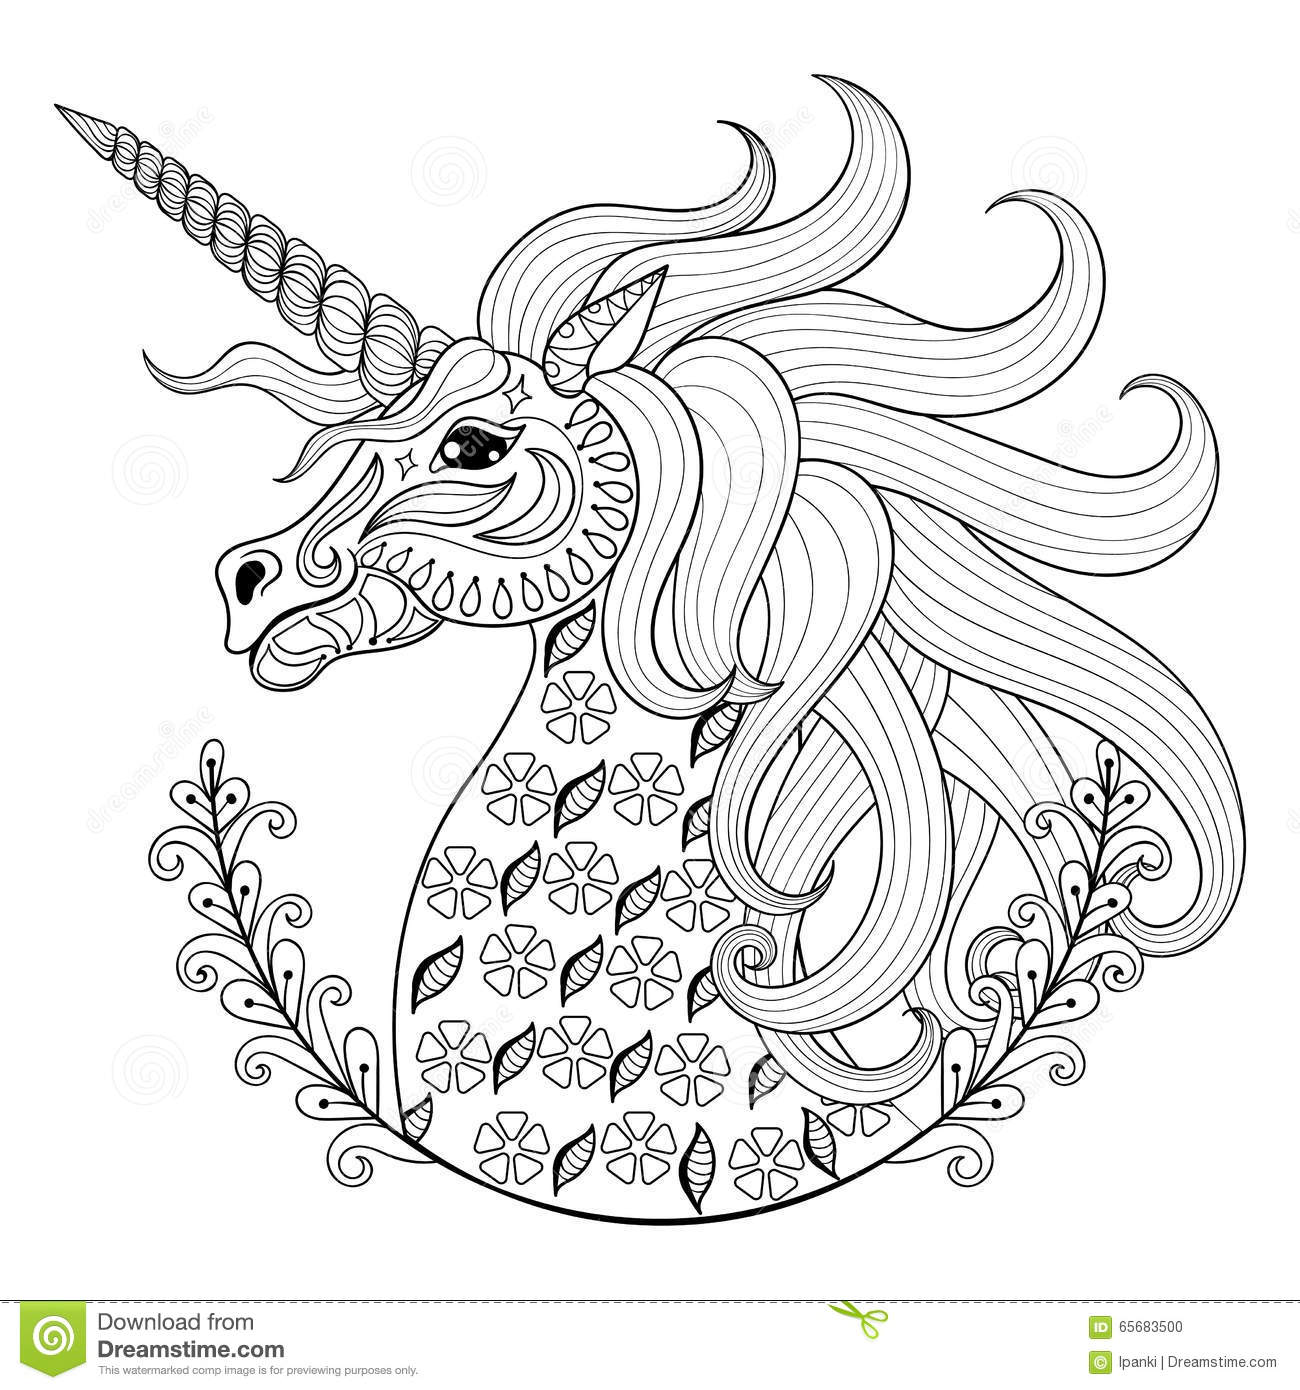 Magical unicorn coloring pages - Hand Drawing Unicorn For Adult Anti Stress Coloring Pages